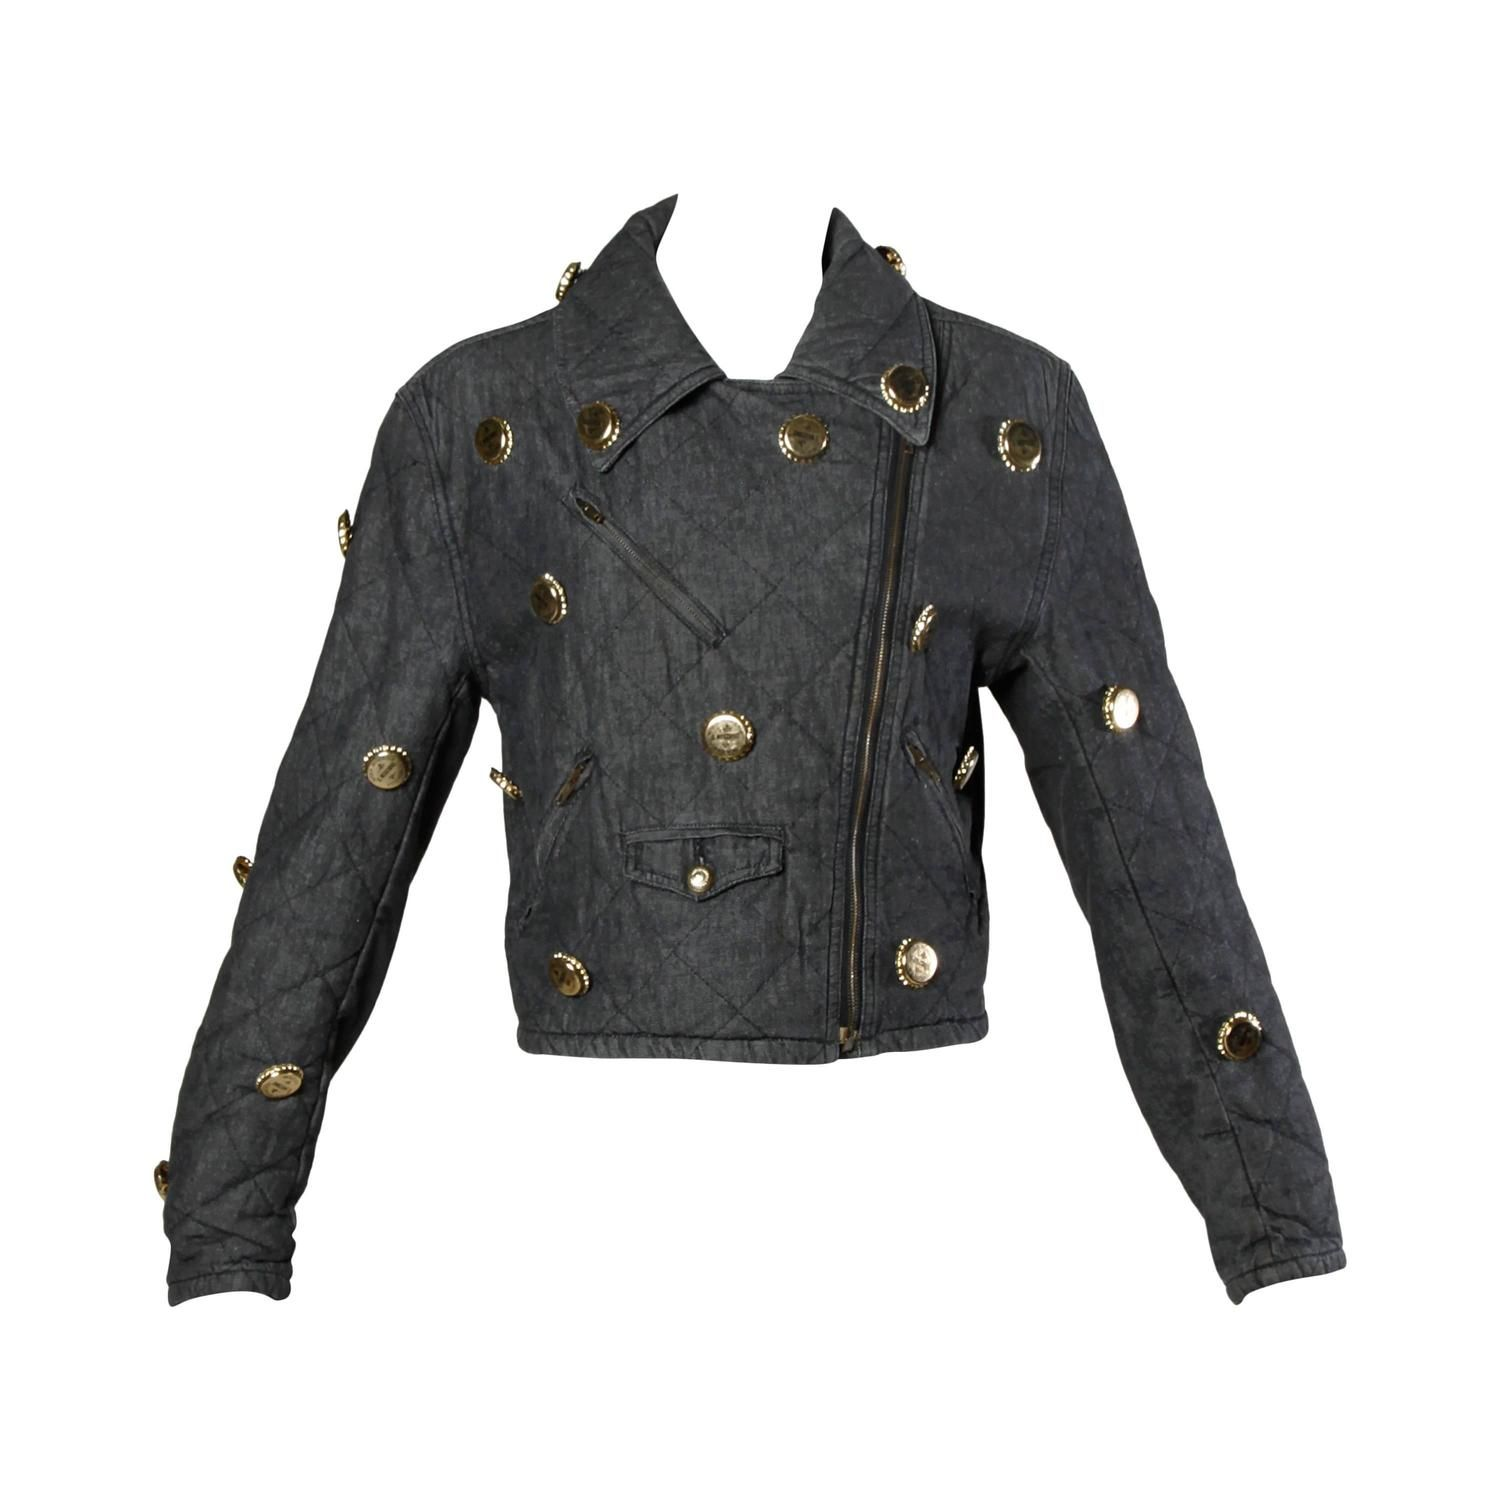 Moschino Vintage Quilted Denim Biker Jacket with Bottle Cap Appliques | From a collection of rare vintage jackets at https://www.1stdibs.com/fashion/clothing/jackets/